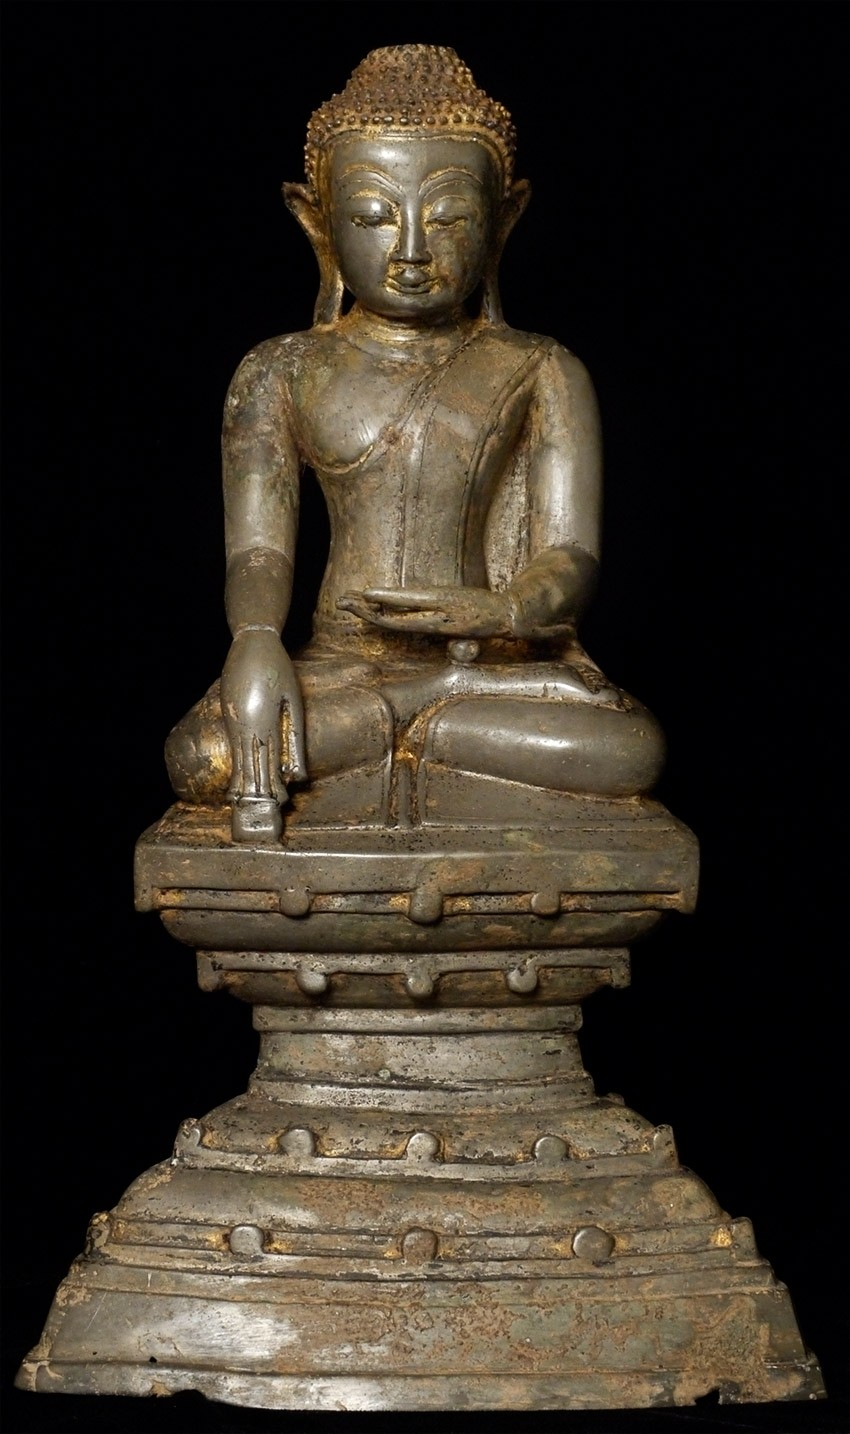 18th century Burmese Buddha statue from Burma